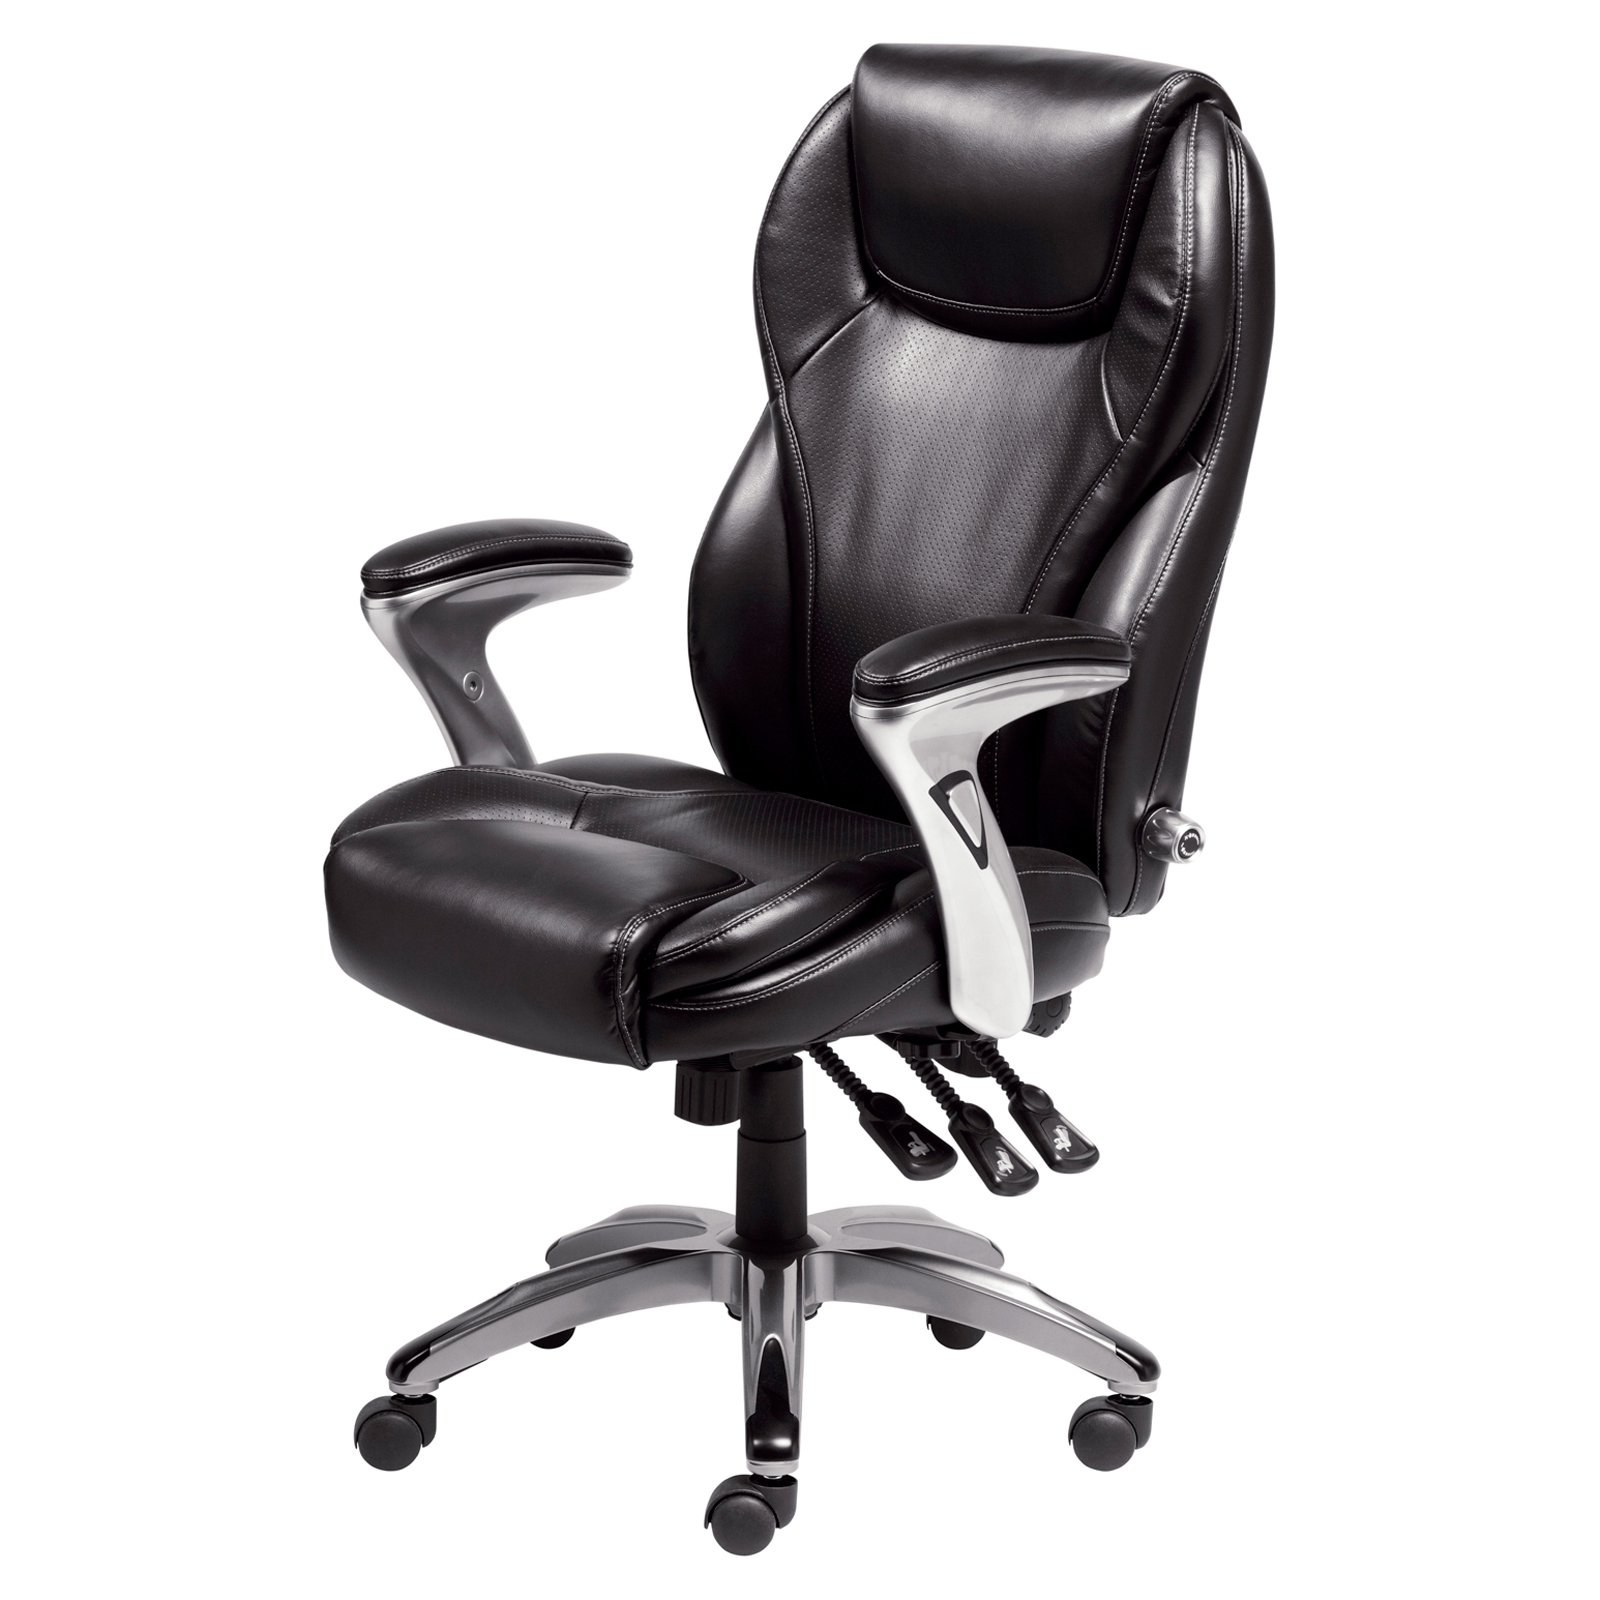 Widely Used Black Executive Office Chairs In Serta Bonded Leather Ergo Executive Office Chair – Black (View 7 of 20)